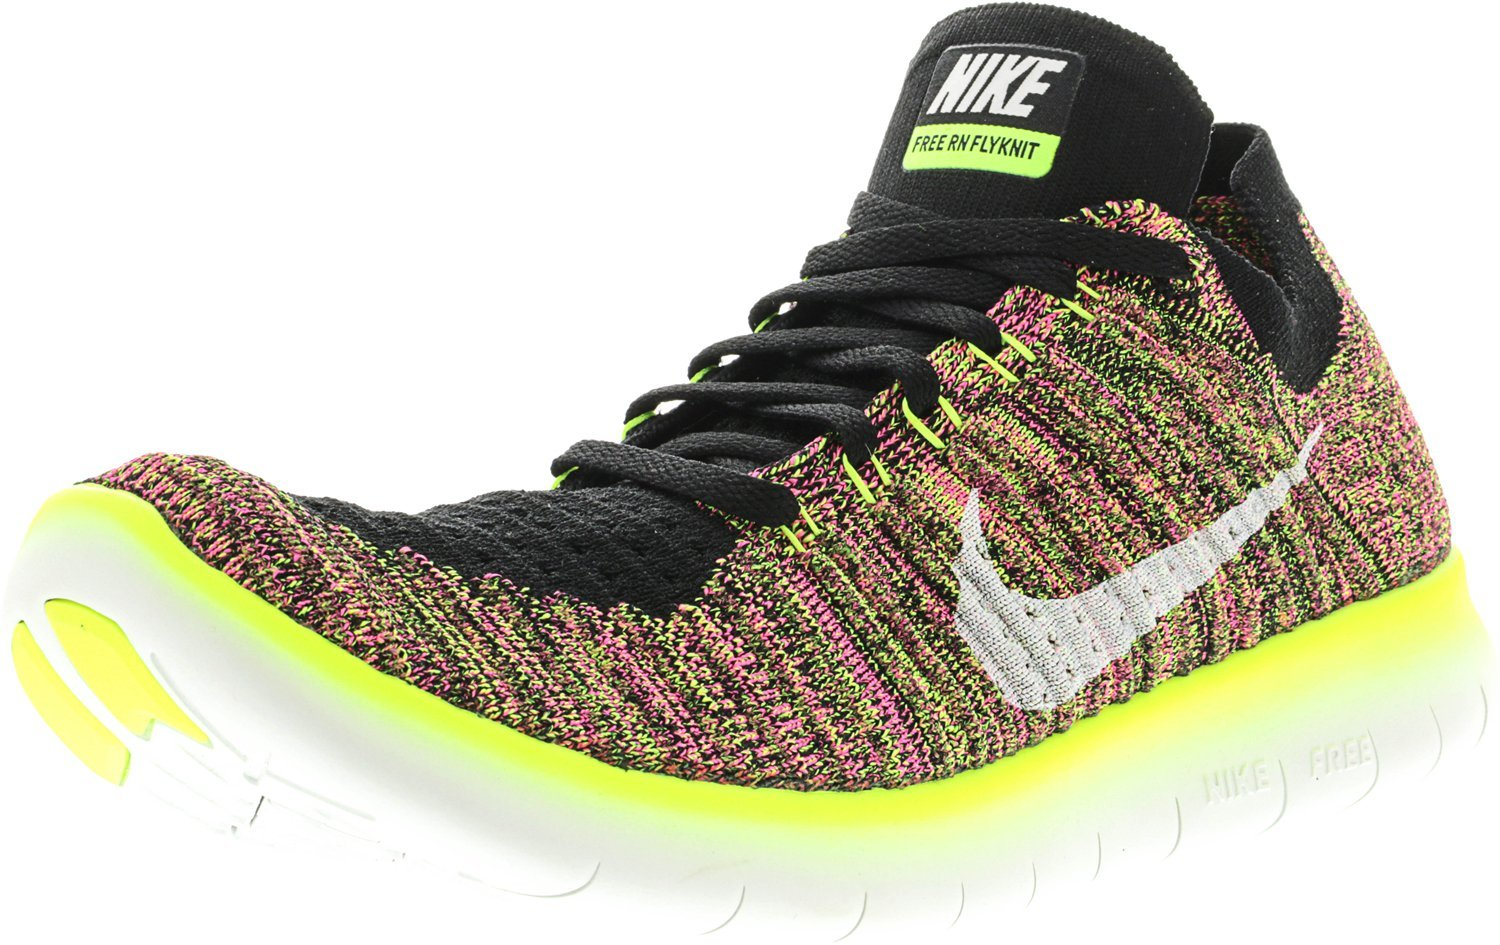 Nike Free RN Flyknit OC, Zapatillas de Running para Hombre 41 EU|Negro (Negro (Multi-color/Multi-color))